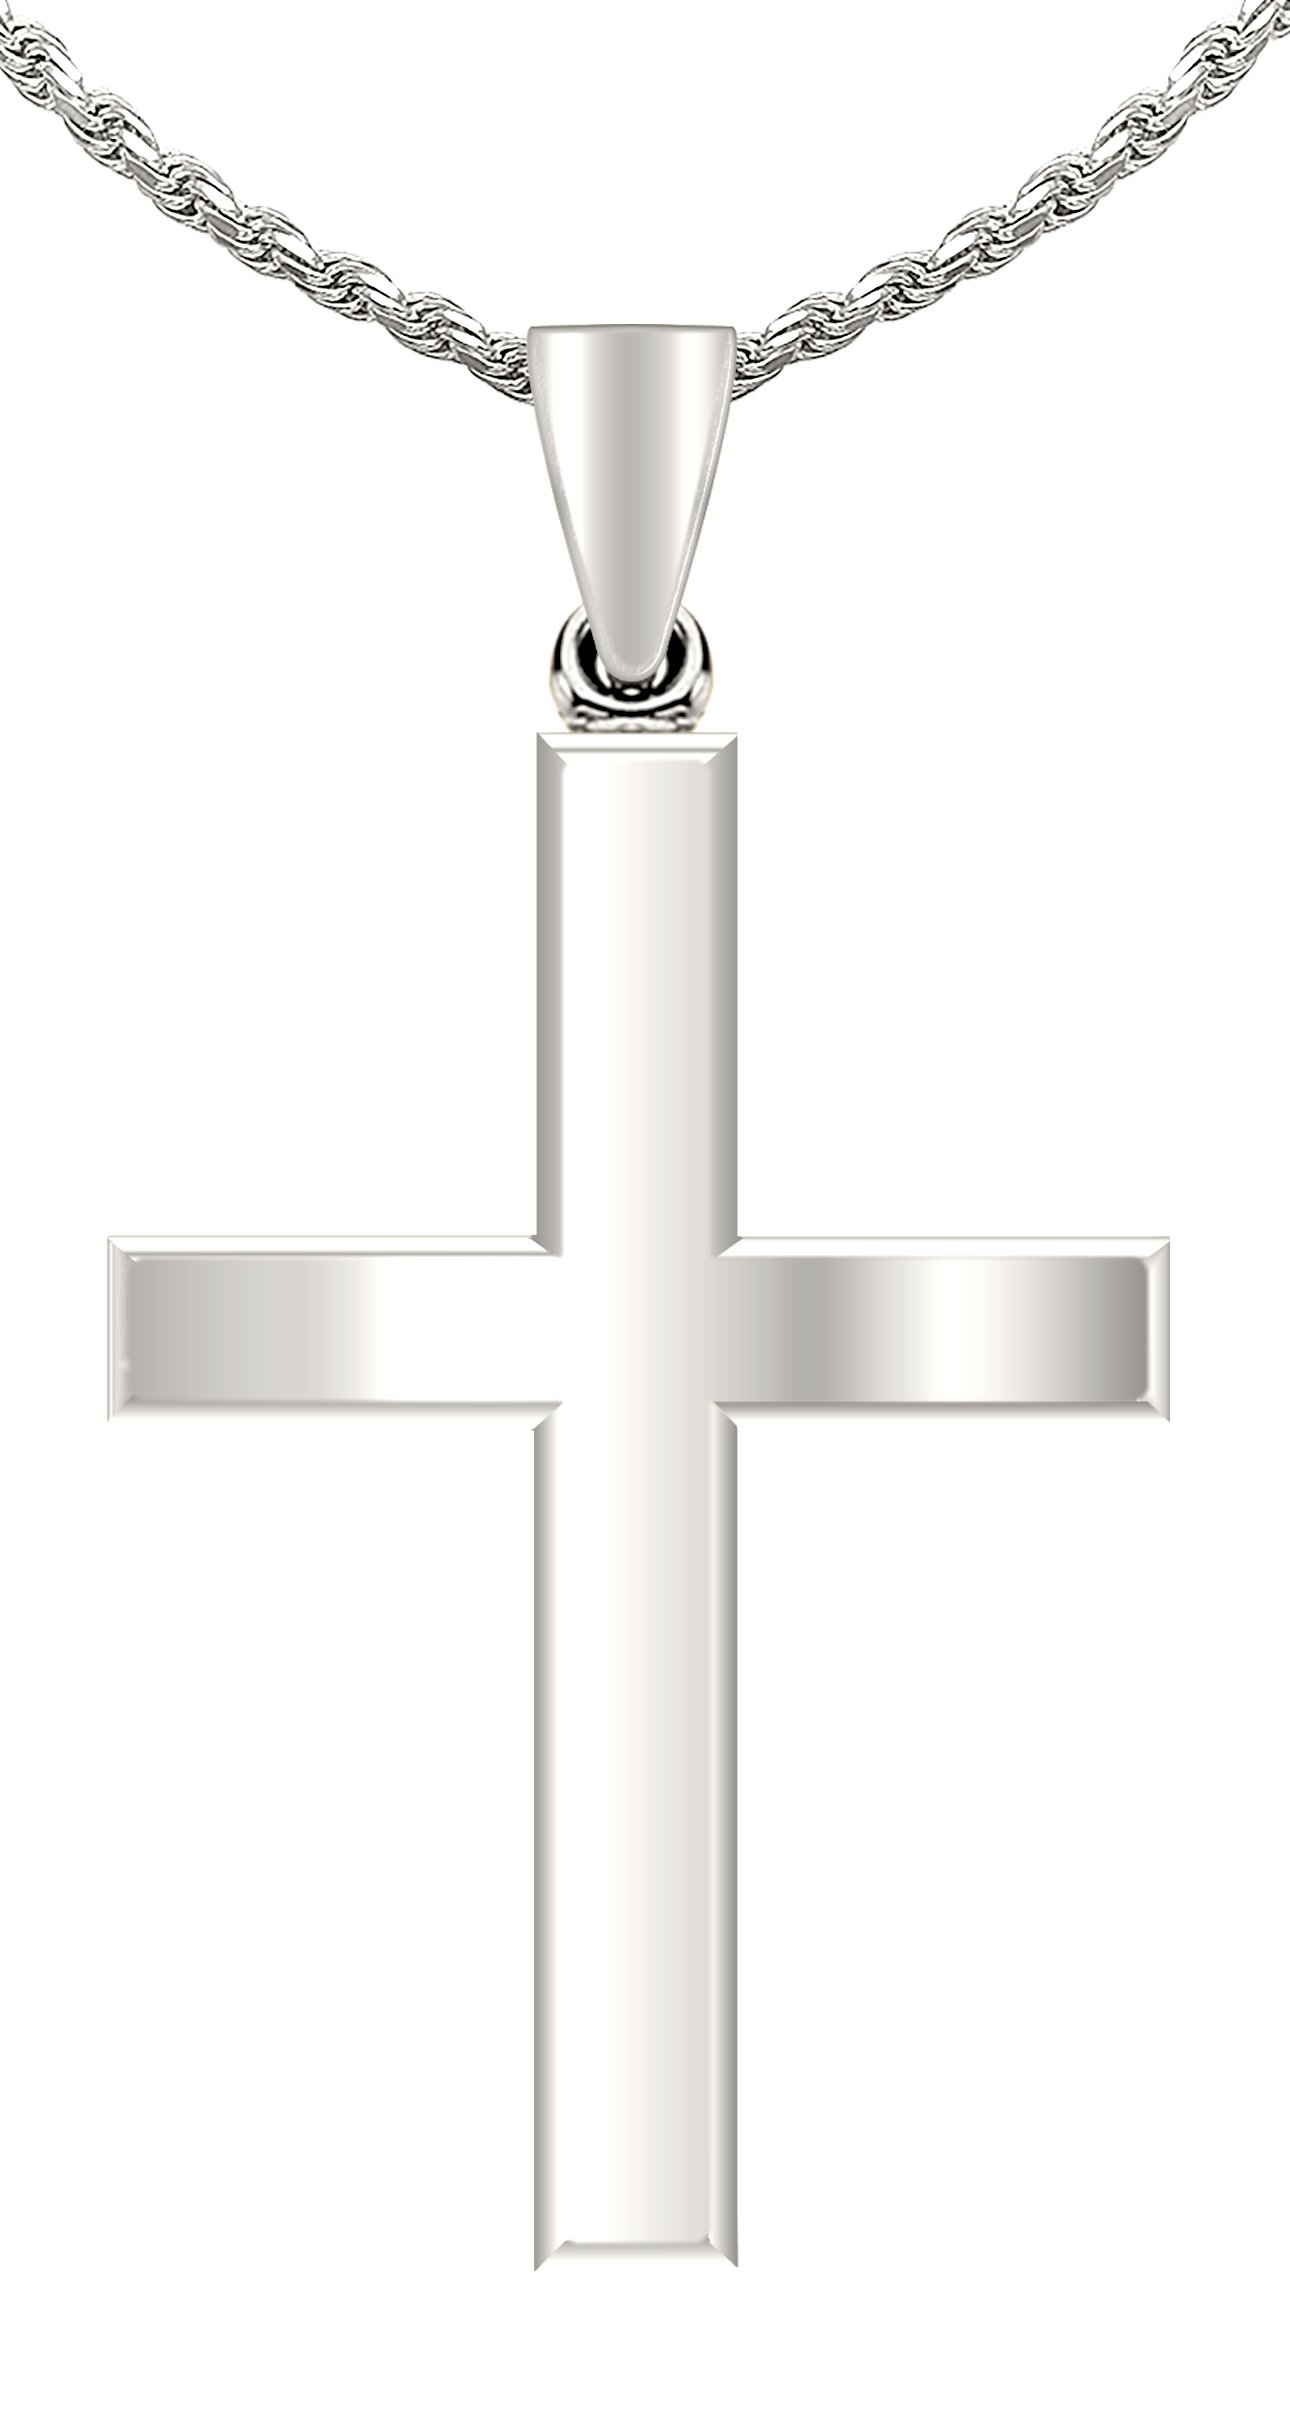 Mens 14k White Gold Christian Cross Pendant Polished Finish 1.5mm Cable Chain Necklace, 18in